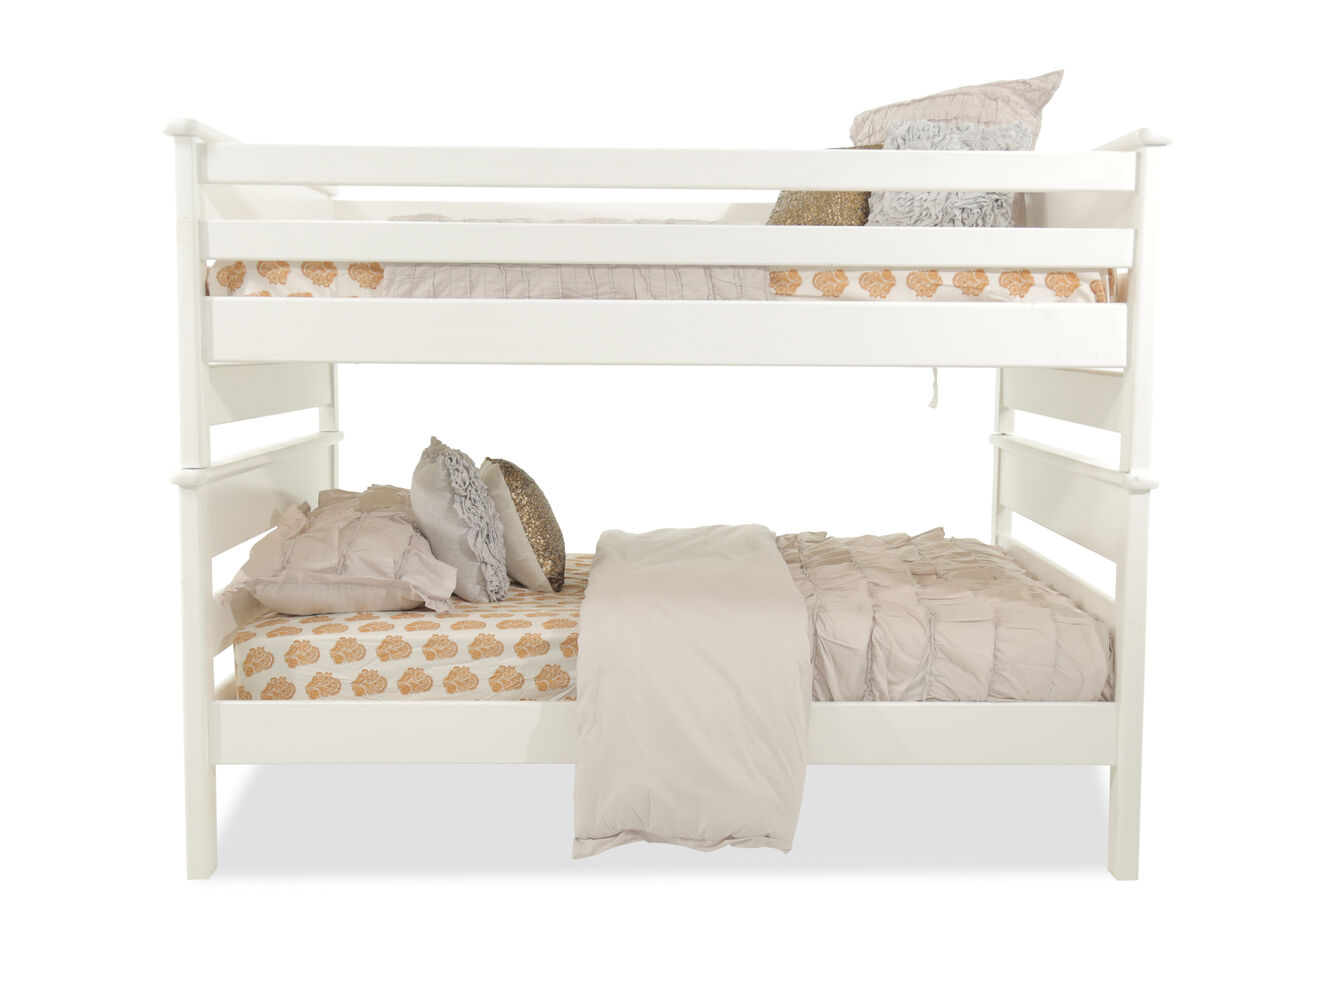 Mathis Brothers Bedroom Furniture Trendwood Laguna White Full Over Full Bunk Bed Mathis Brothers